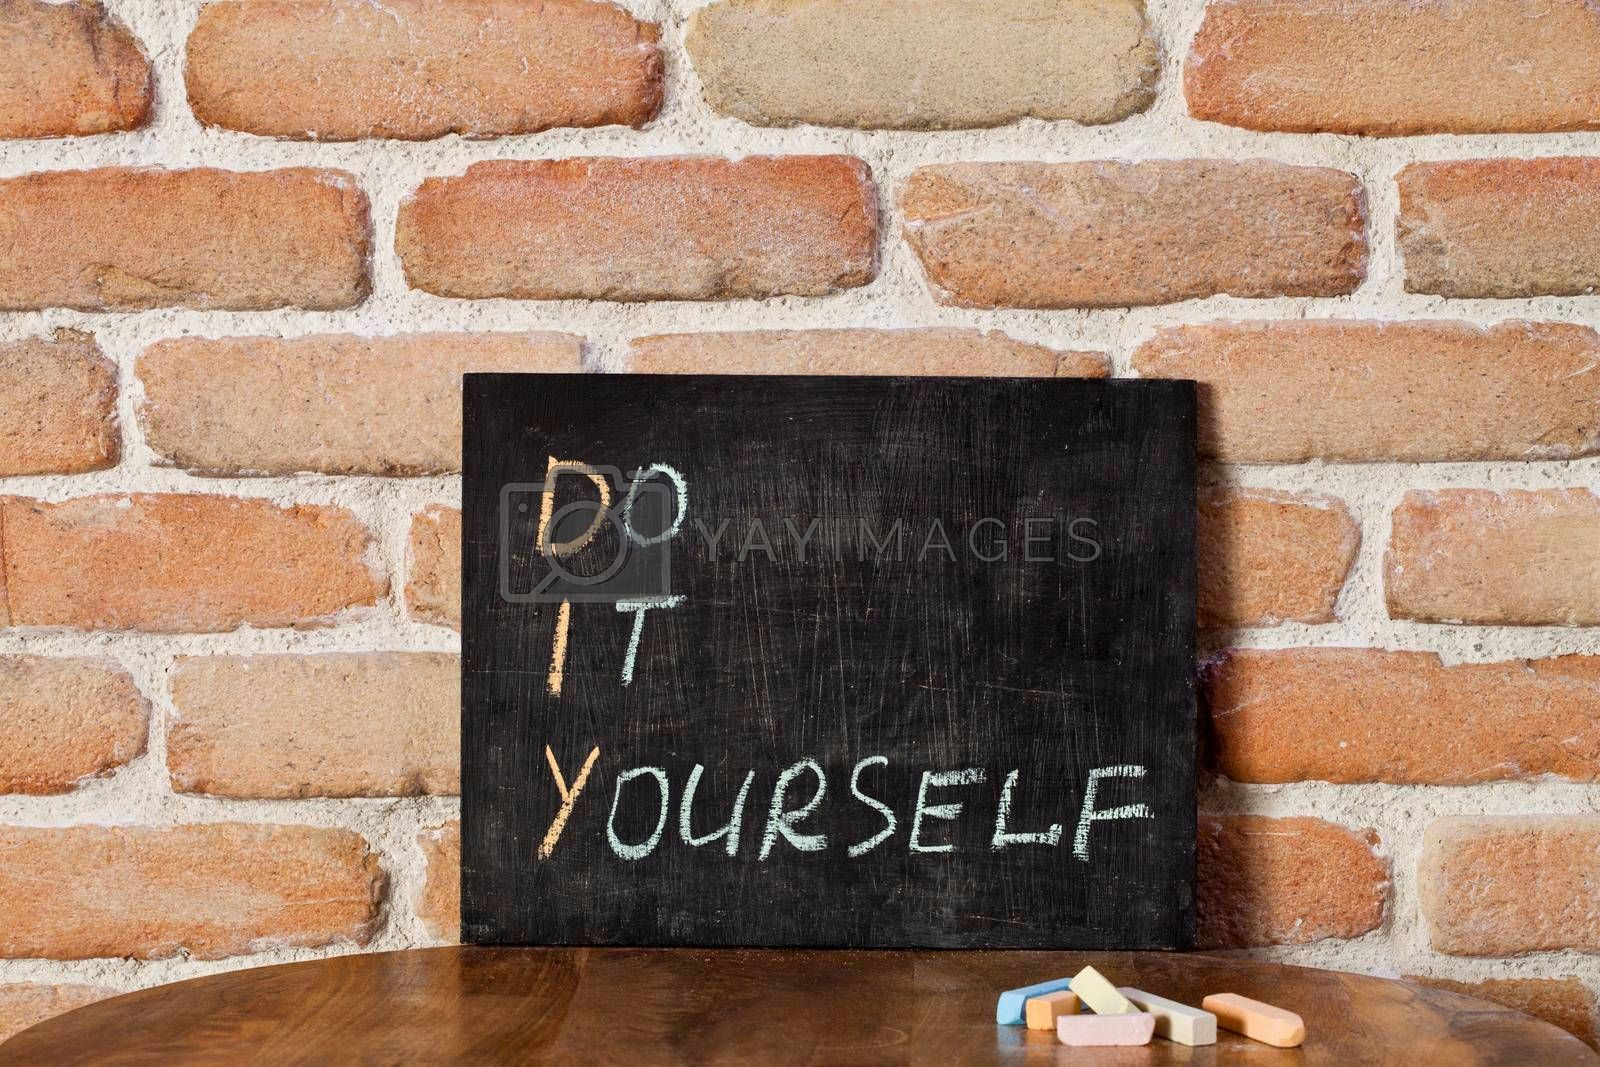 Black chalkboard with the phrase DO IT YOURSELF drown by hand on wooden table on brick wall background. Presentation concept.